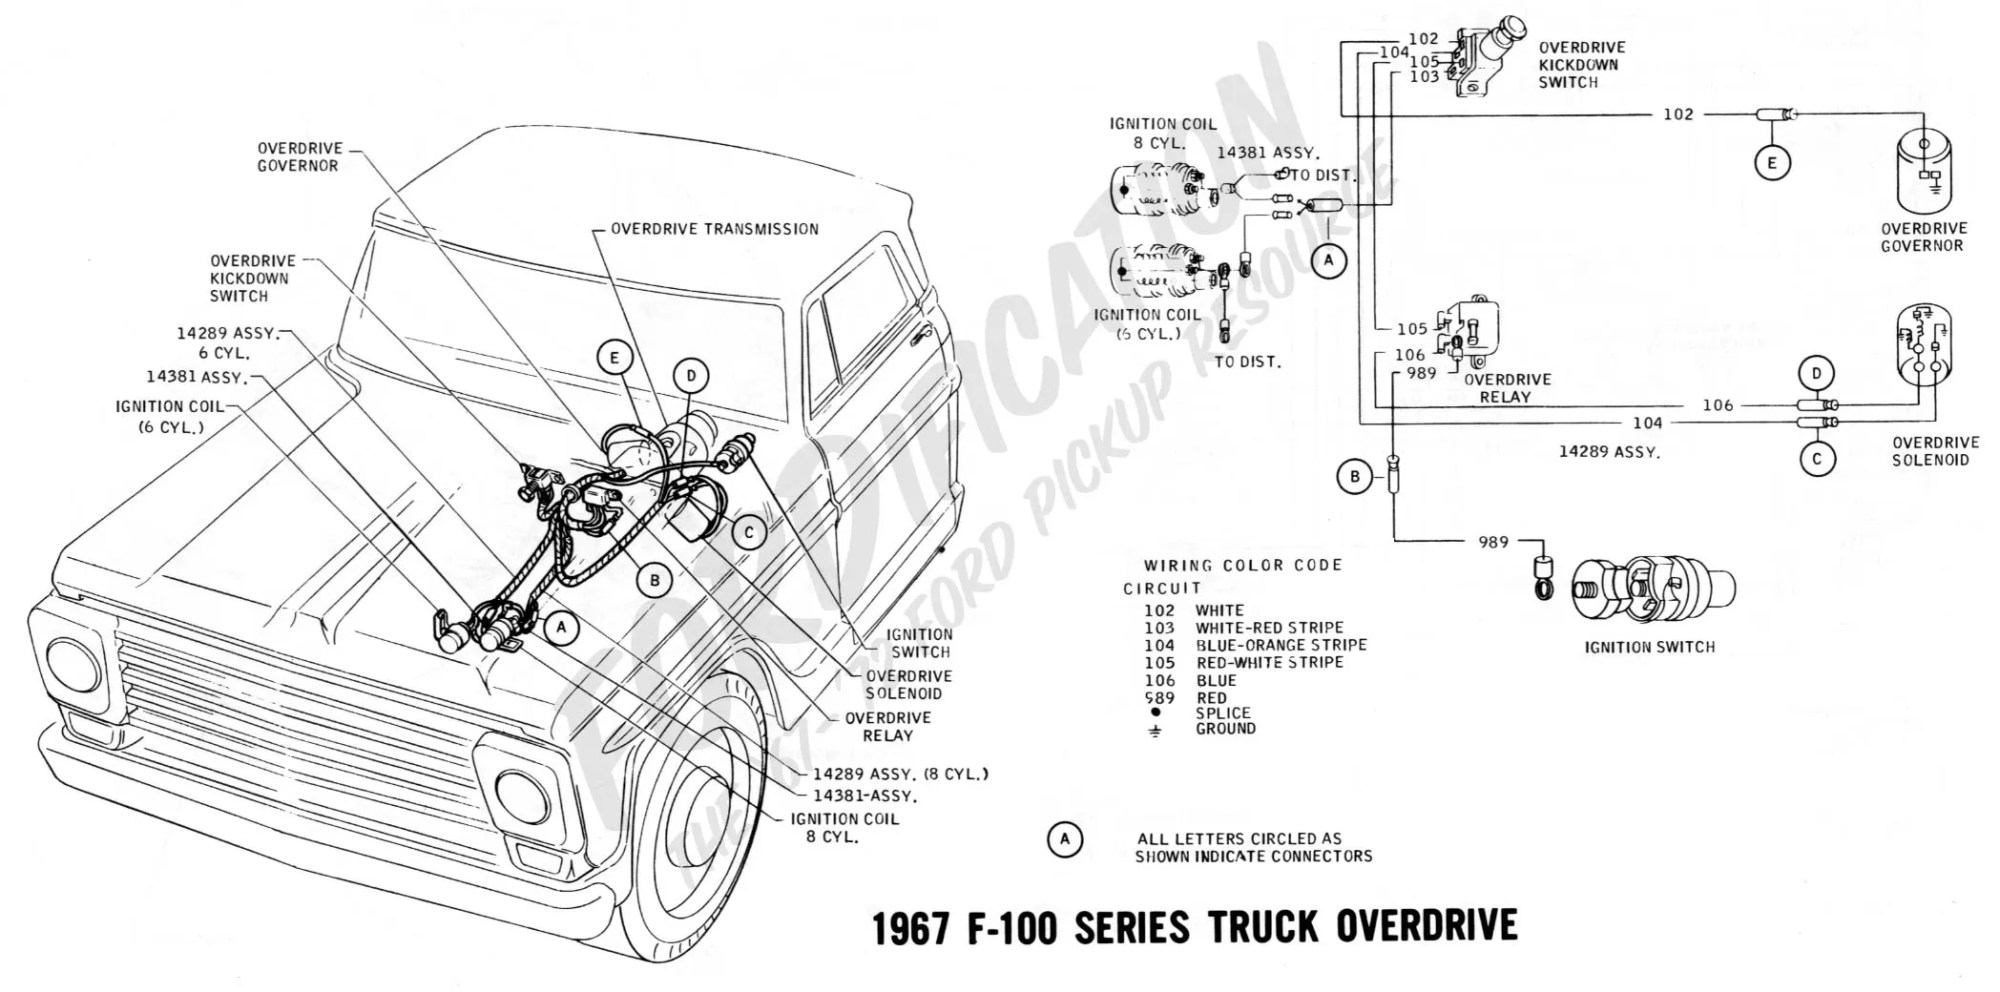 hight resolution of ford ranger steering column wiring diagram wiring diagram databaseford steering column wiring colors